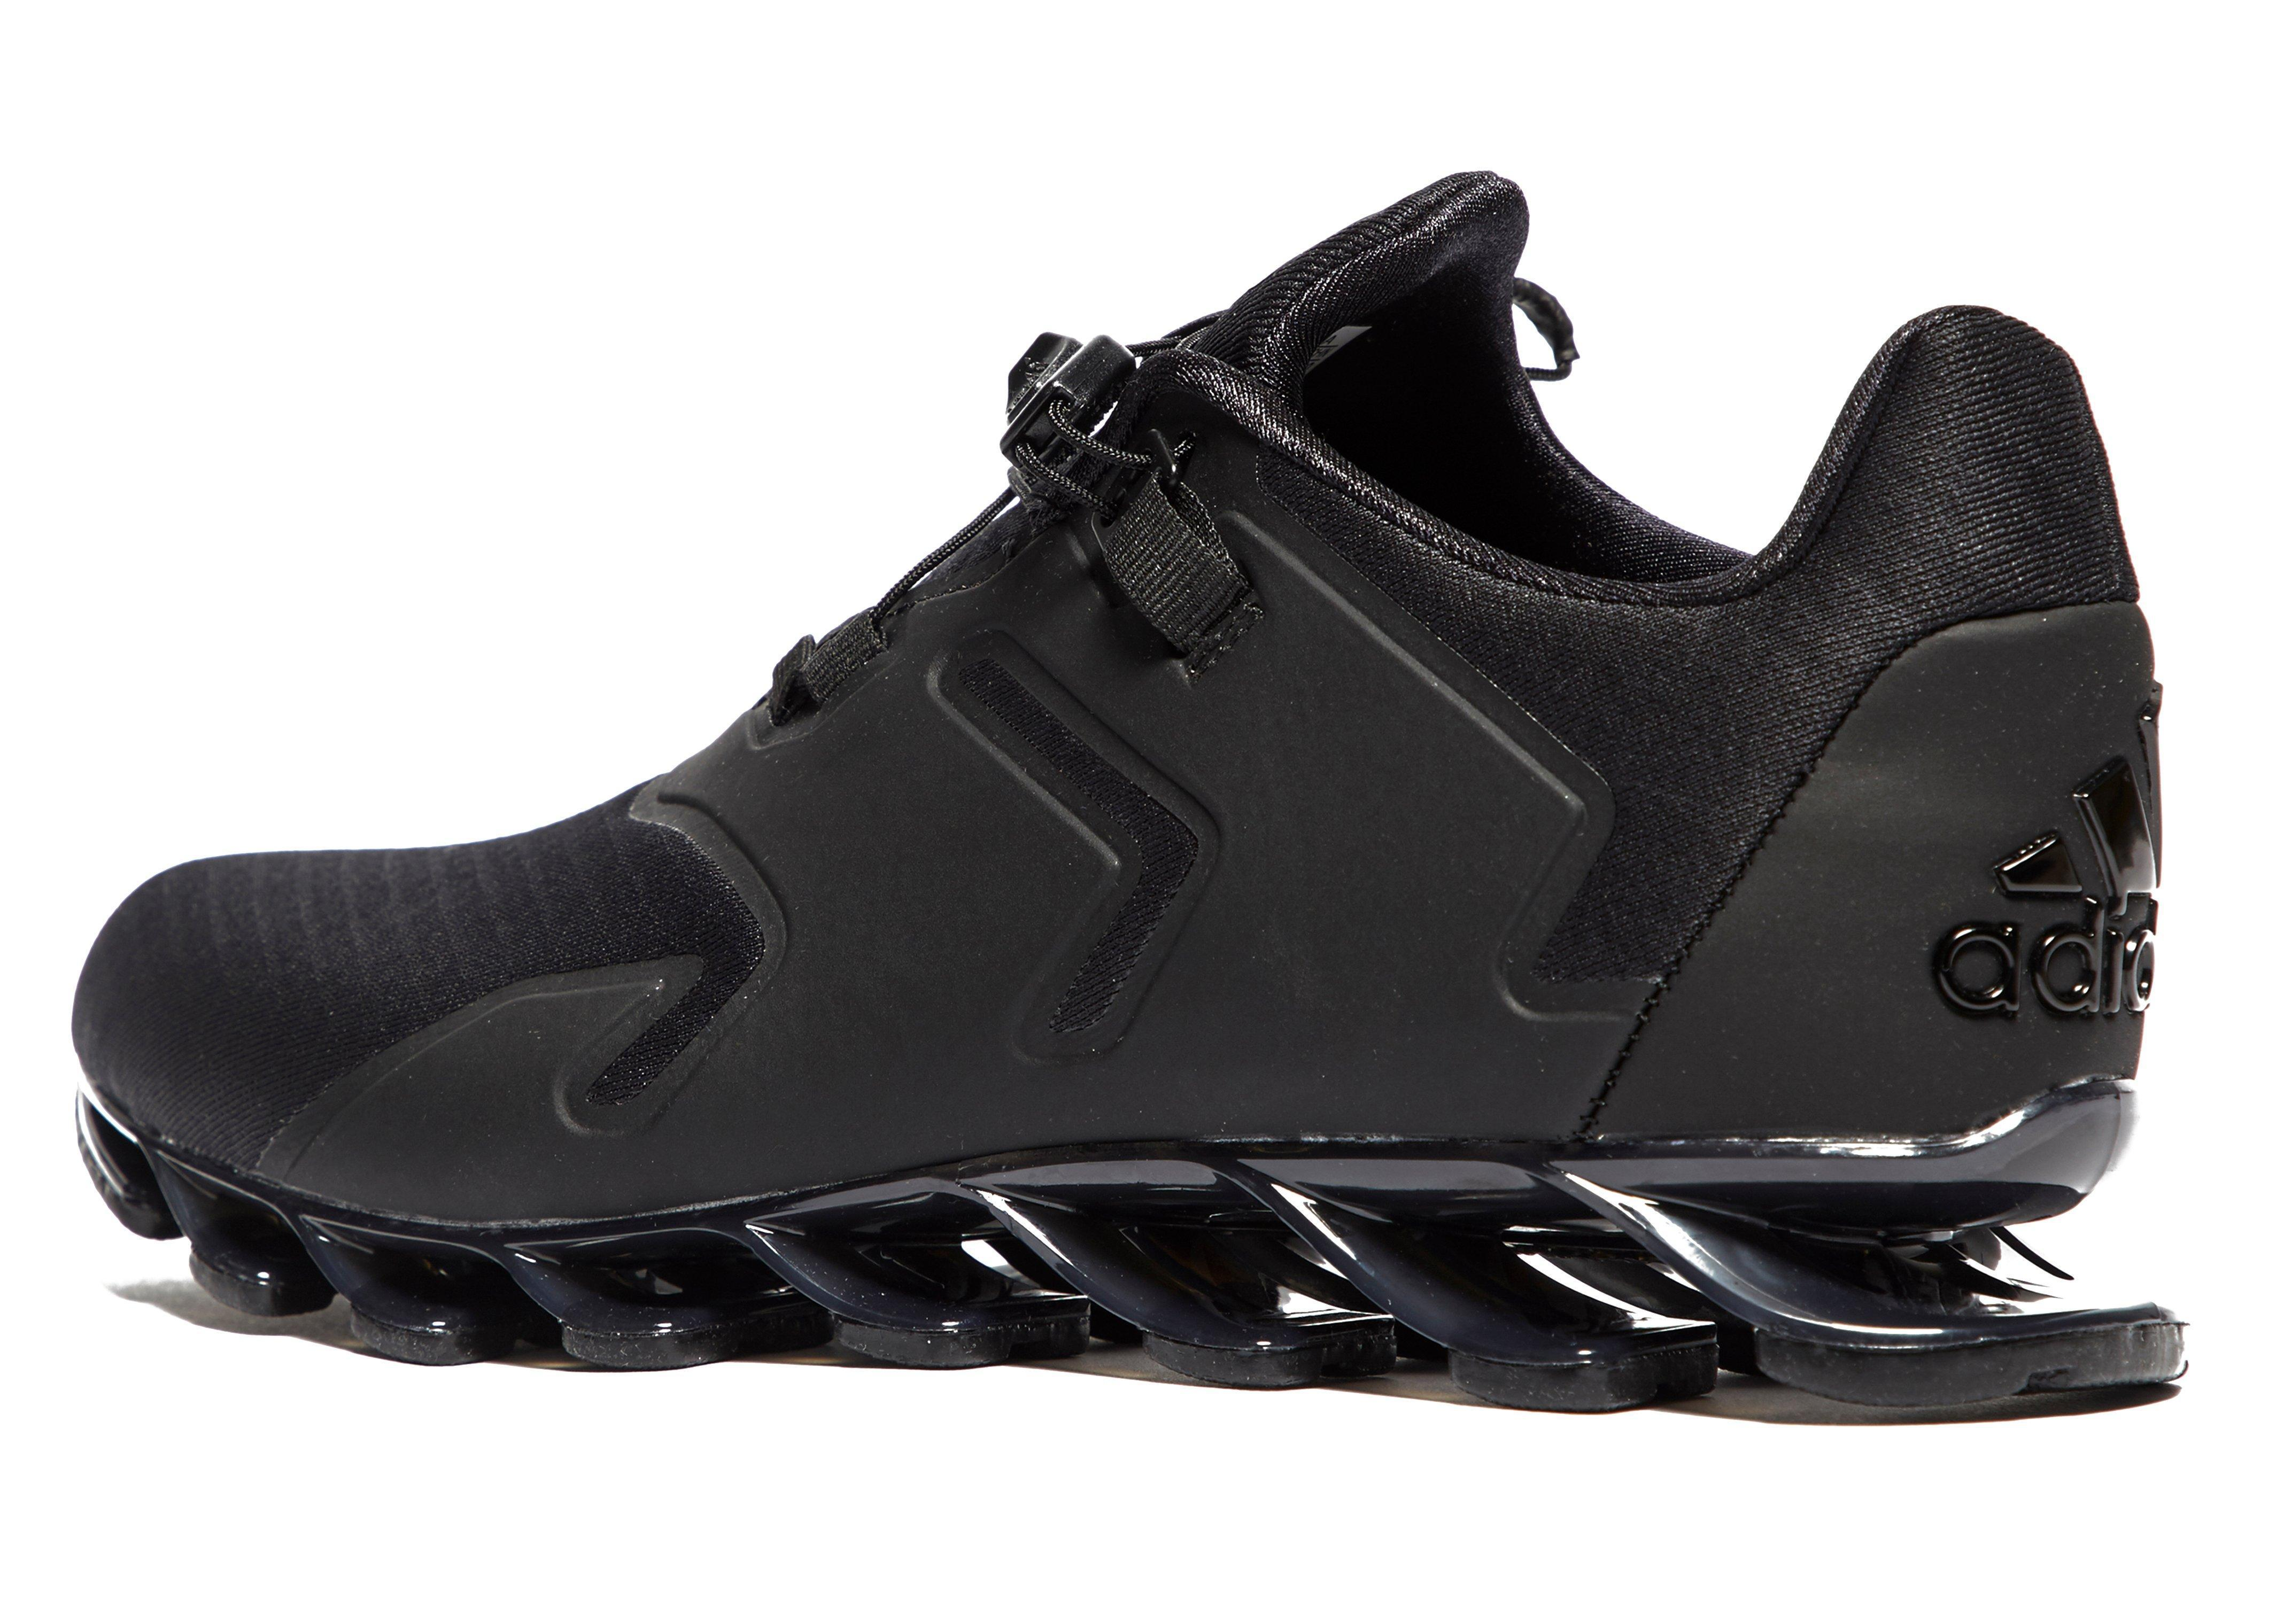 aed4a2e7f75 ... new zealand adidas springblade solyce running shoes in black for men  lyst 4ec61 c8770